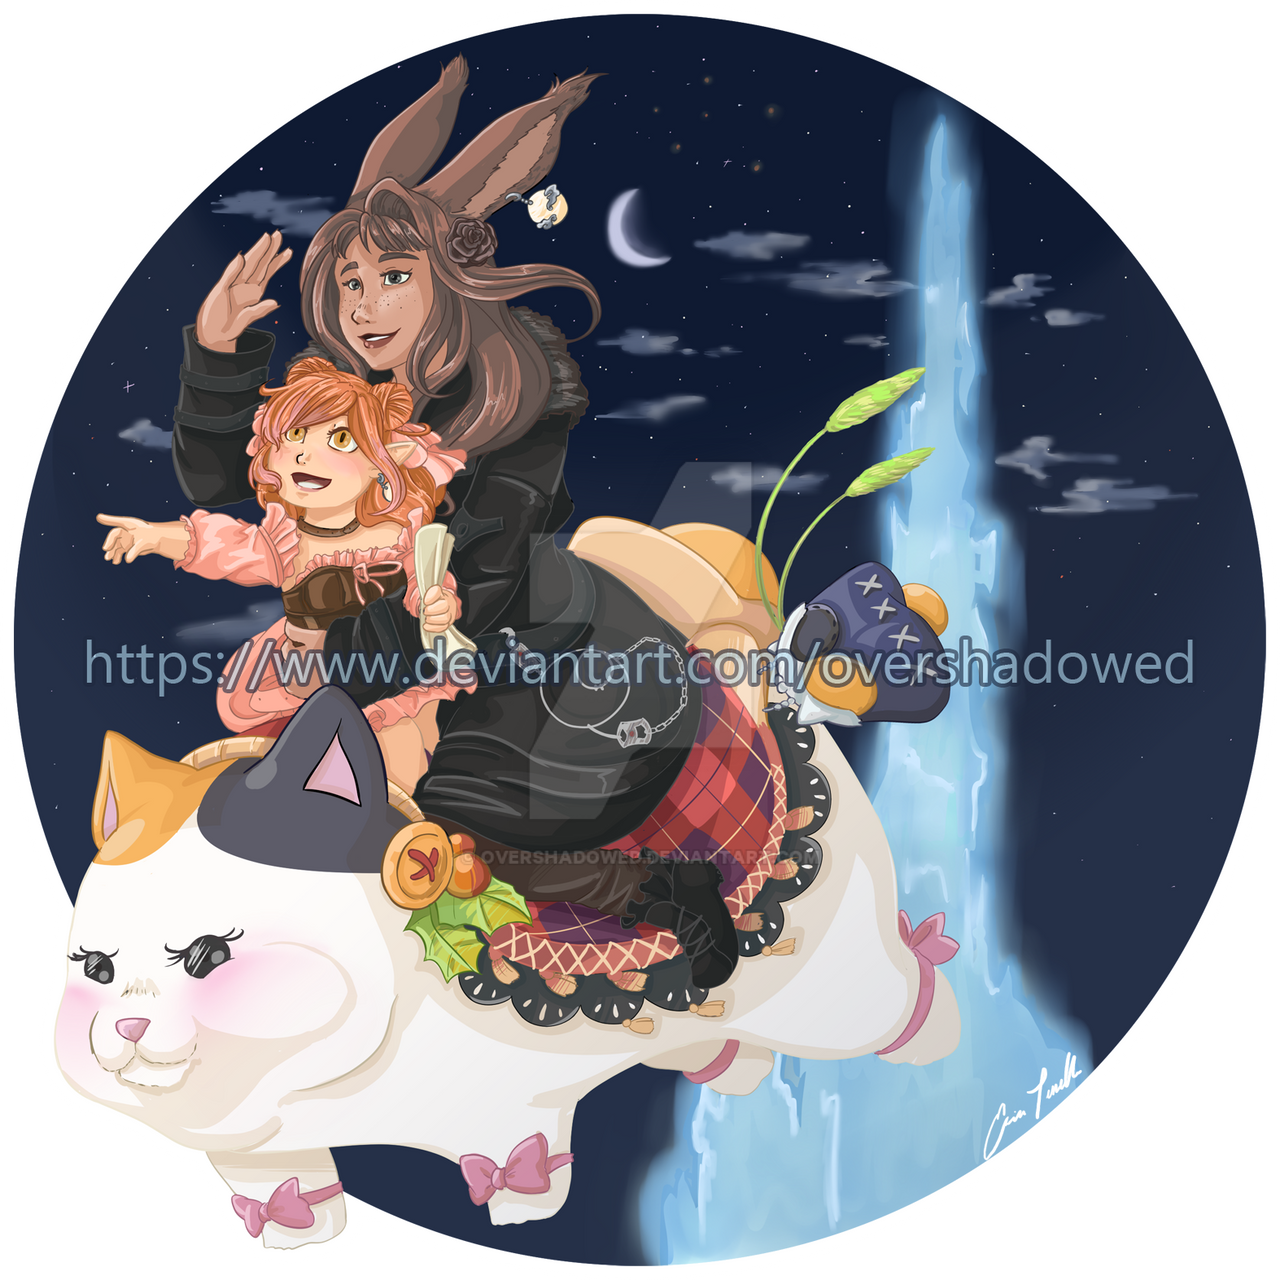 FFXIV Commission March 2020